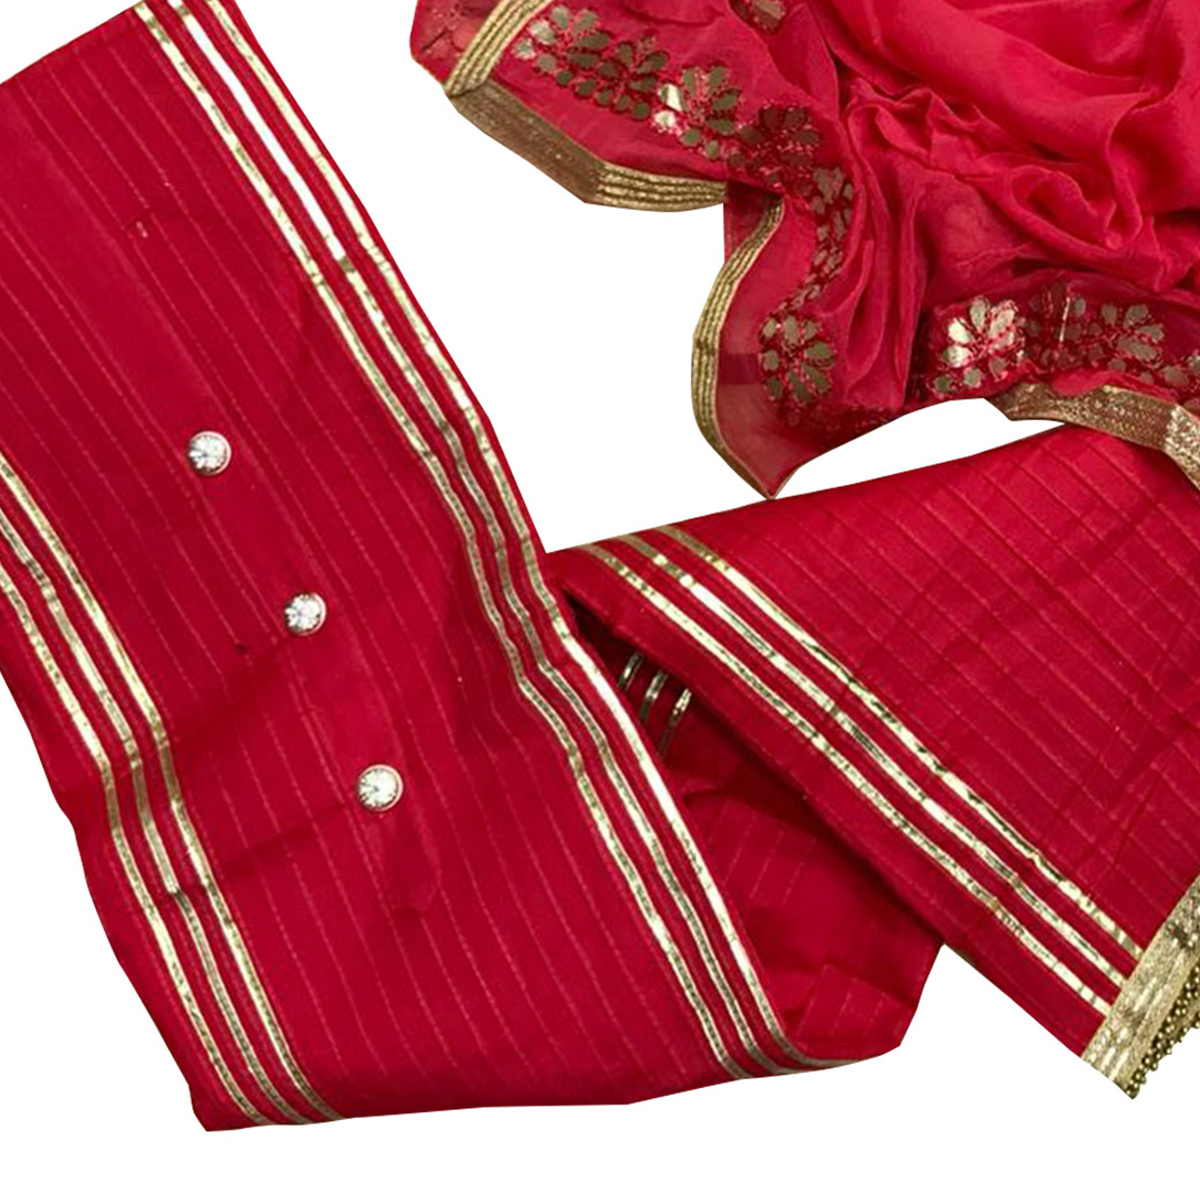 Graceful Rani Pink Colored Partywear Modal Suit